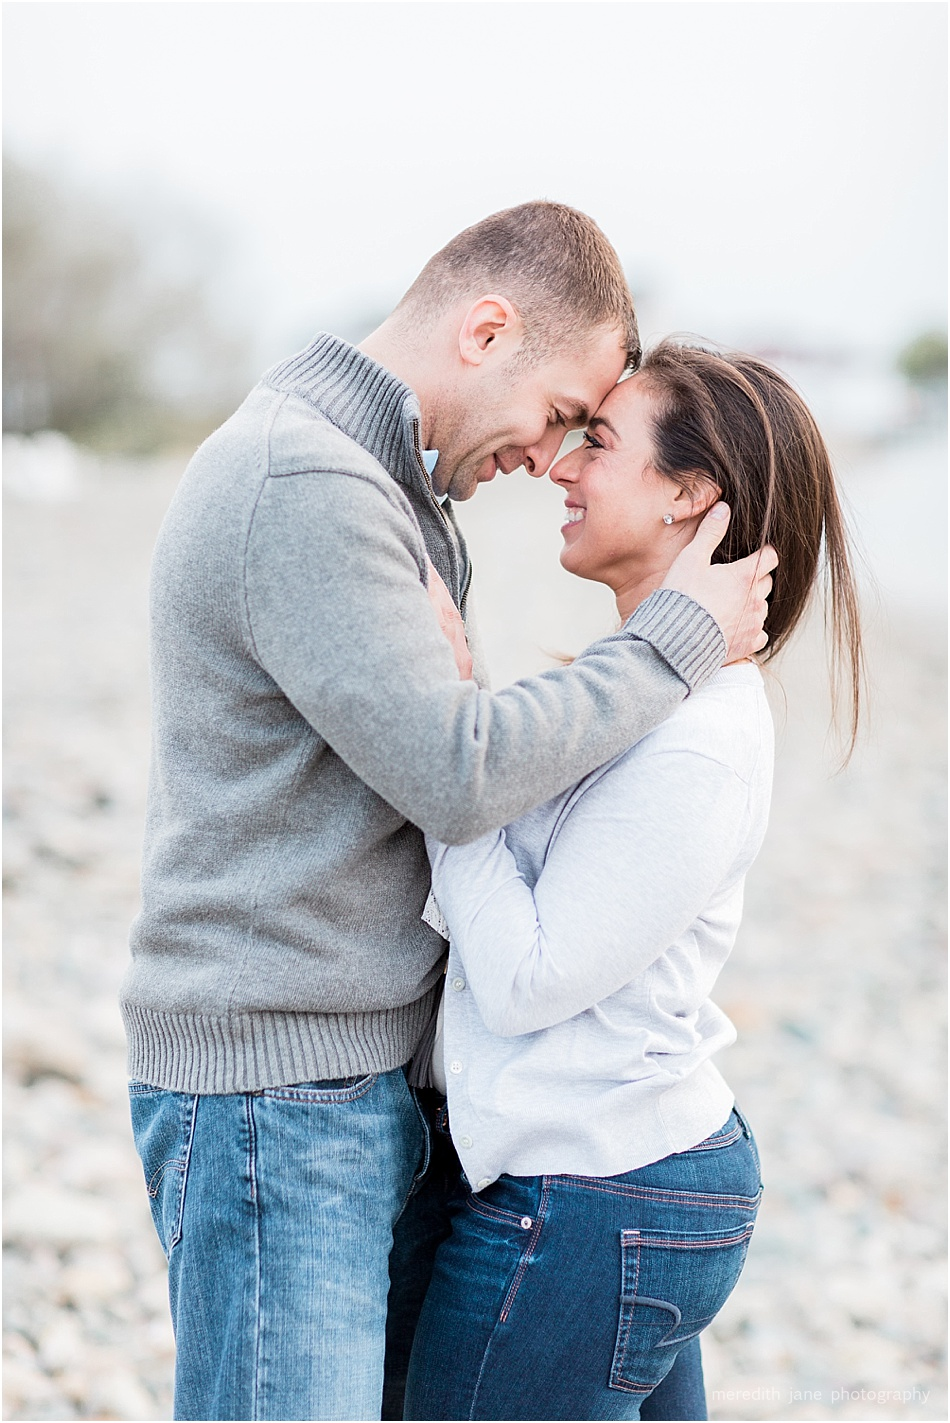 scituate_harbor_spit_engagement_session_cape_cod_boston_wedding_photographer_Meredith_Jane_Photography_photo_0098.jpg